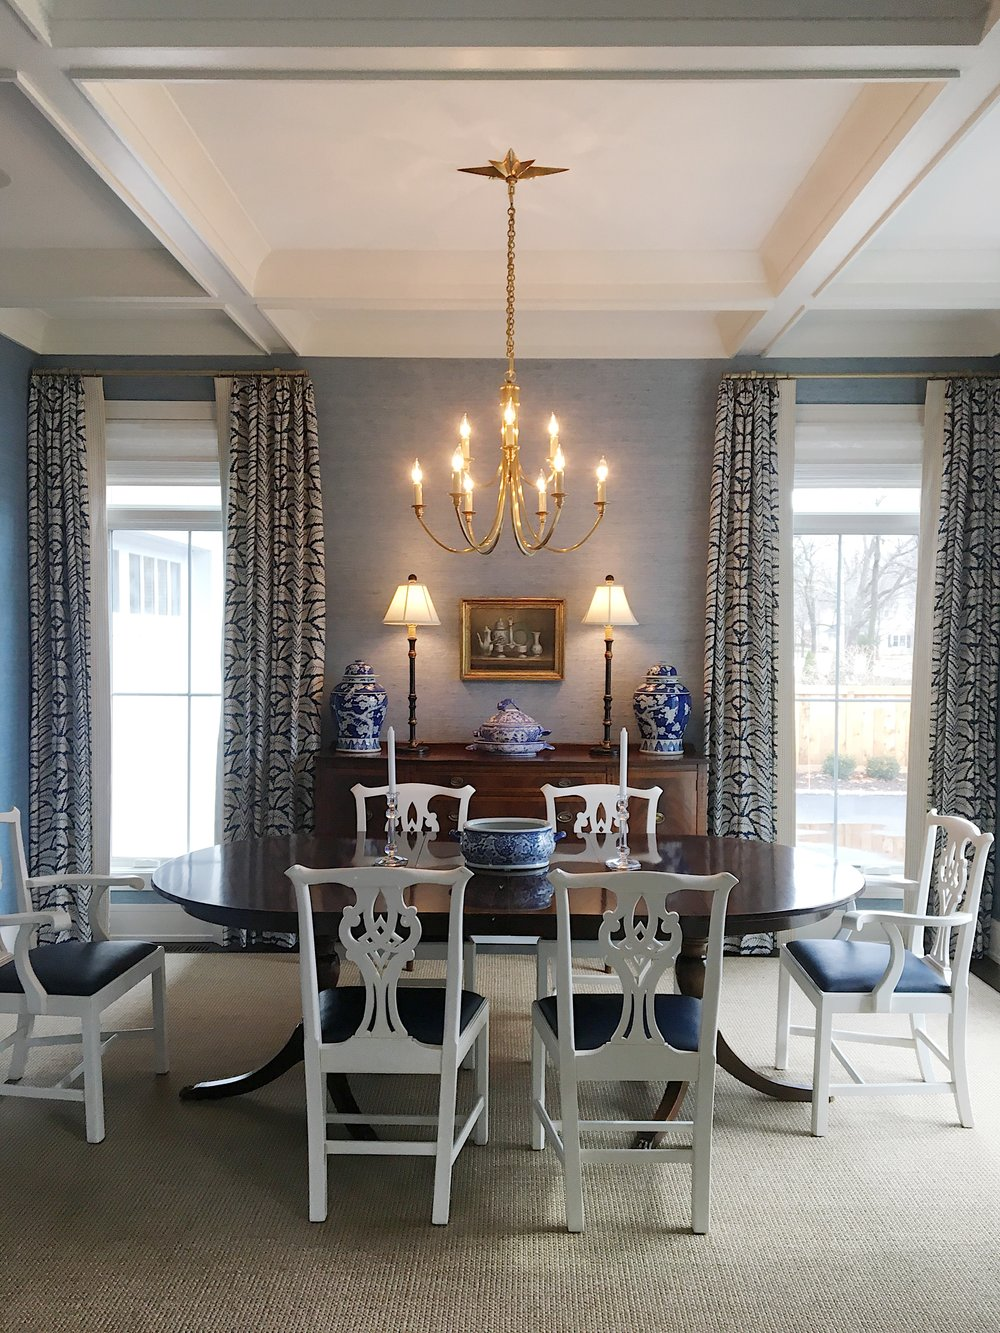 One of our absolute favorite Dining Rooms!